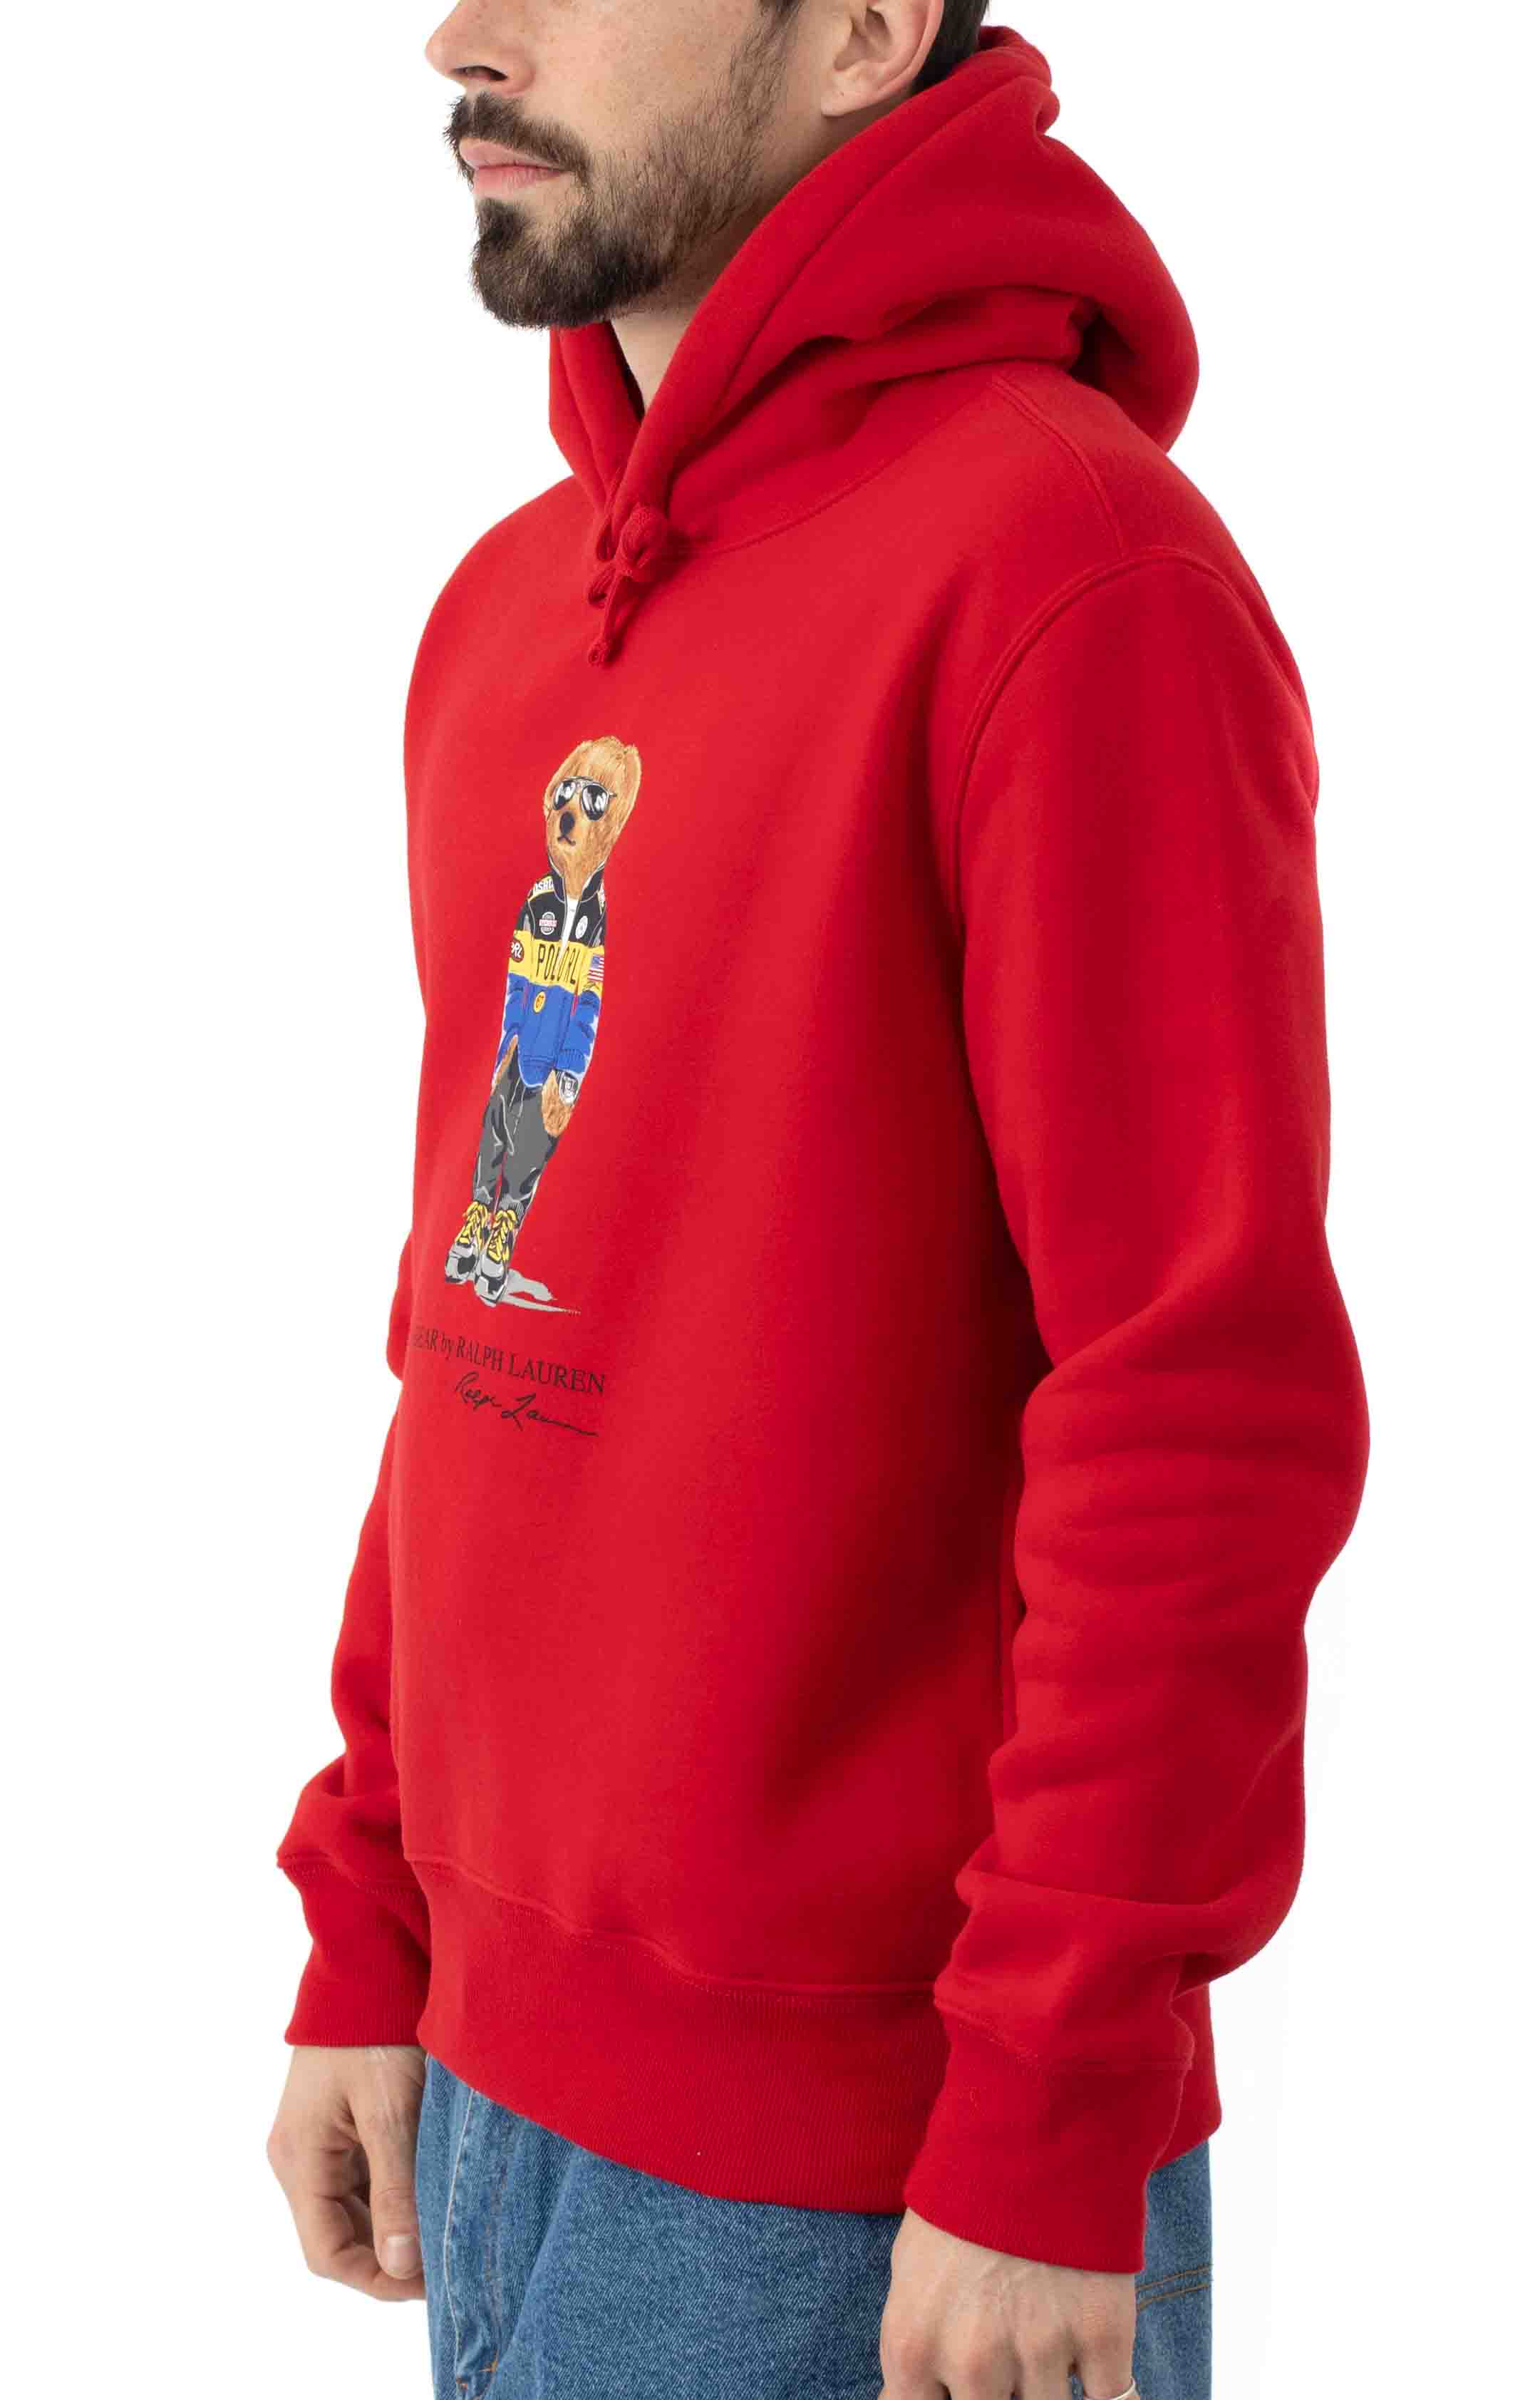 Polo Bear Racing Jacket Pullover Hoodie - Red 2